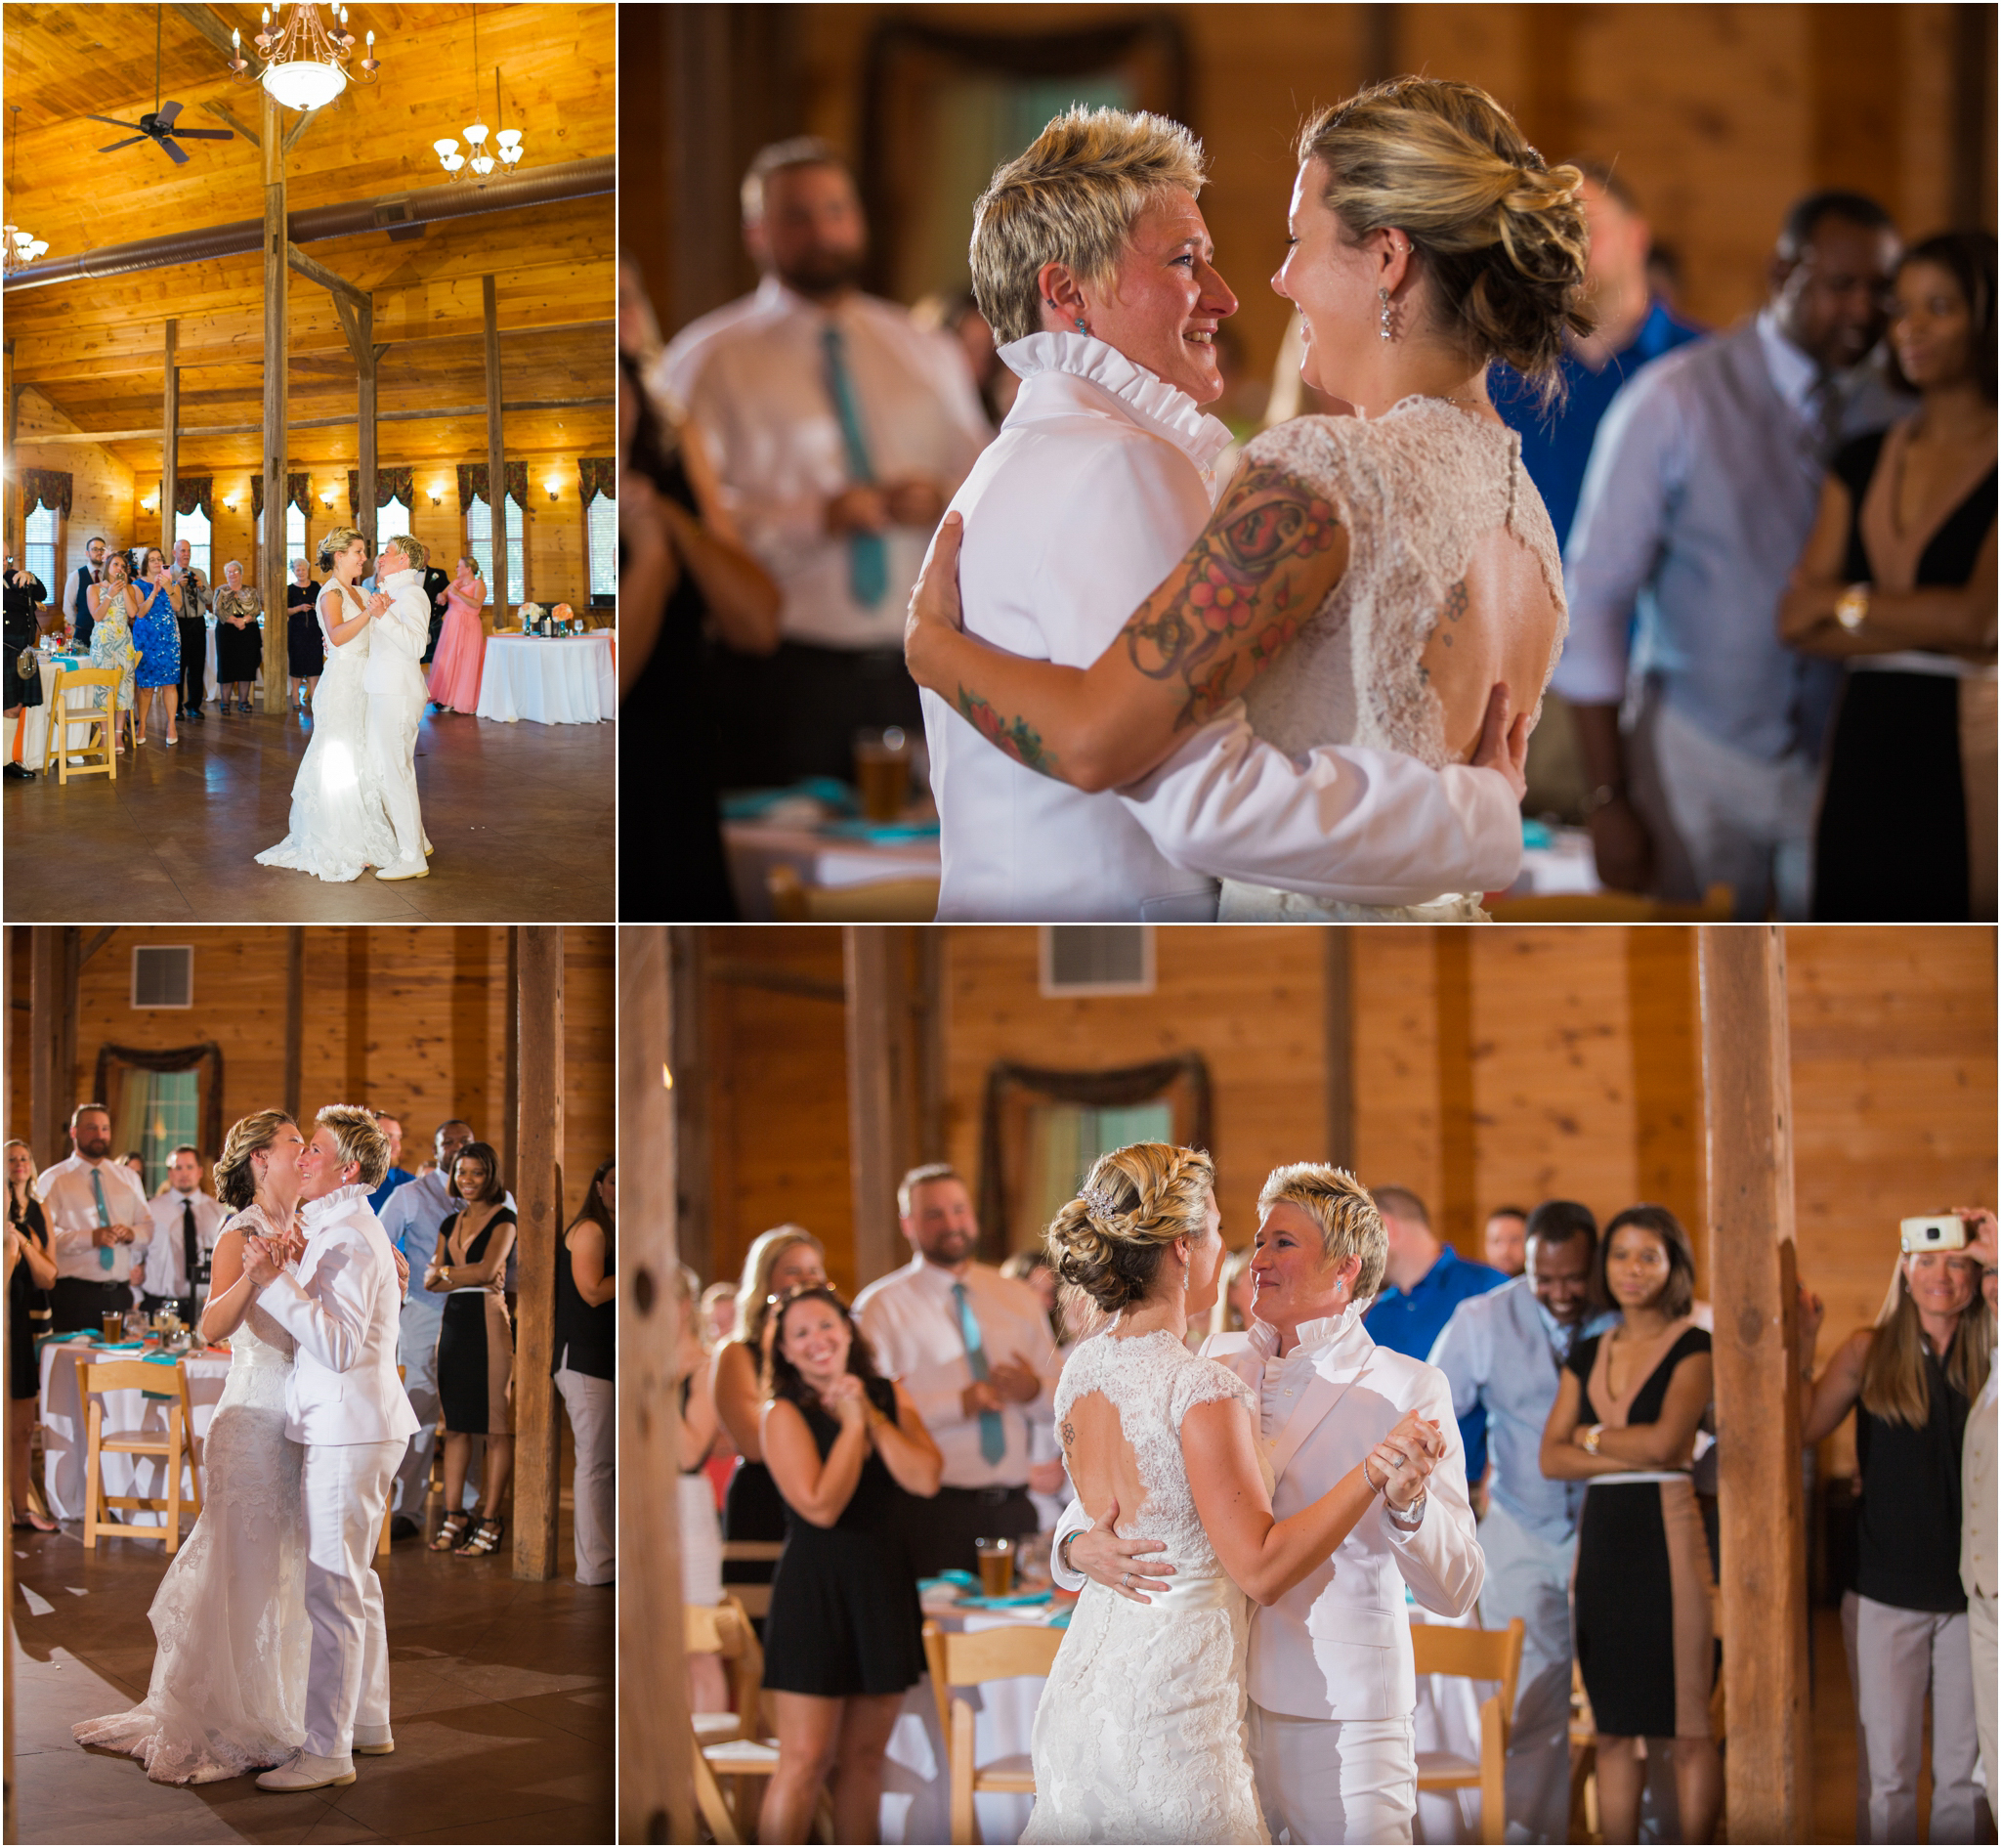 bethany-grace-photography-linganore-winecellars-same-sex-lgbtq-pink-blue-winery-outdoor-wedding-23.JPG